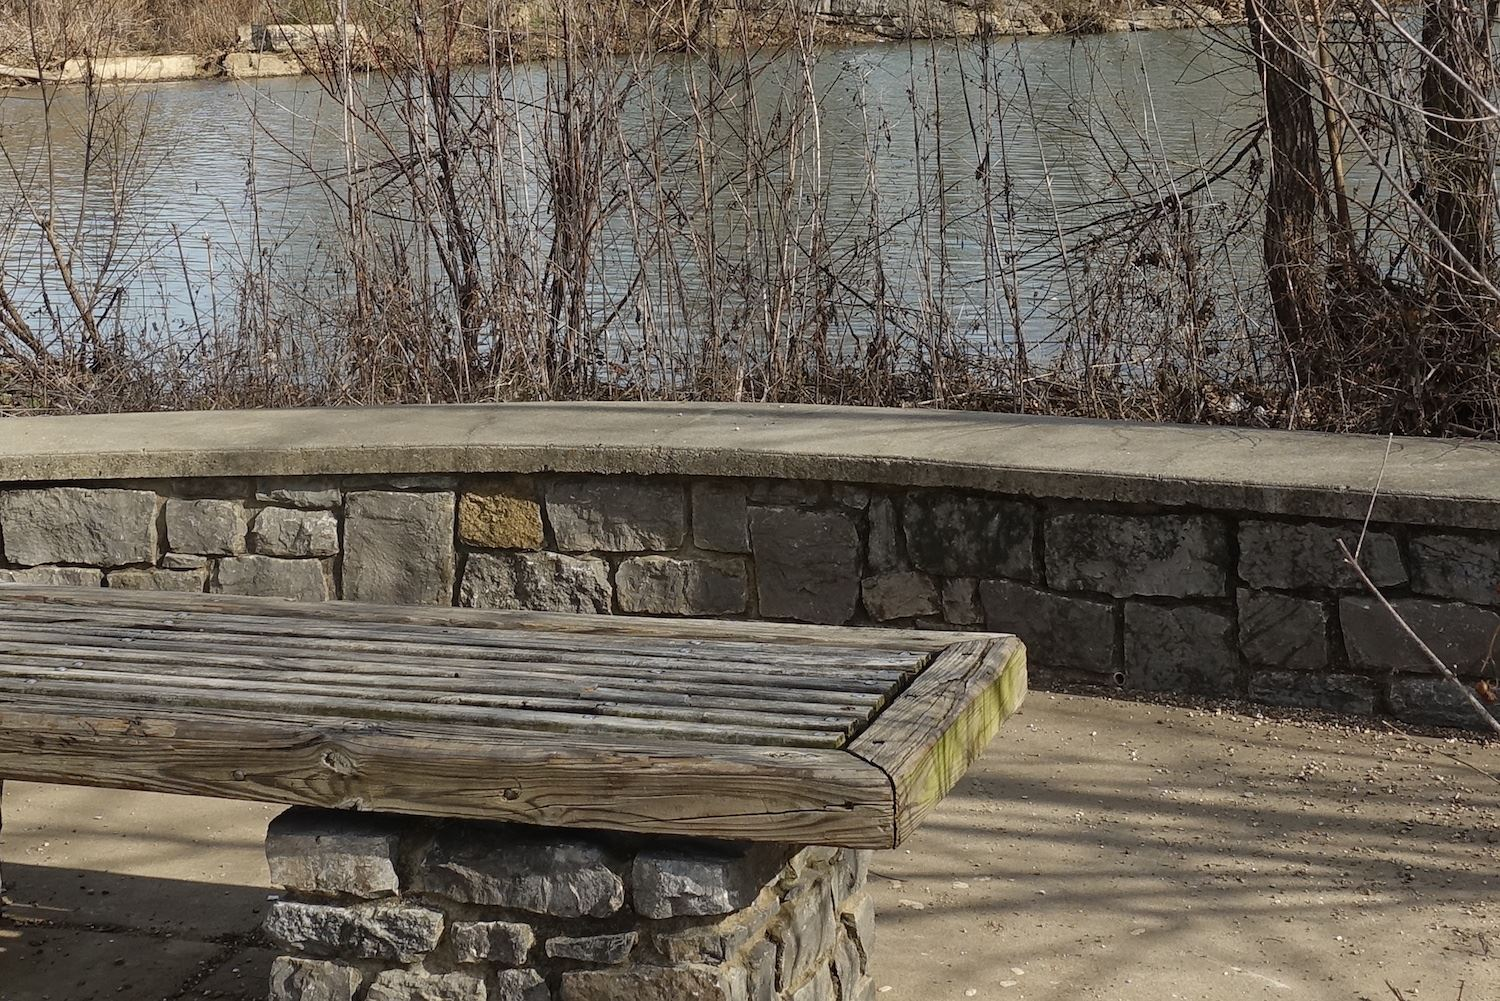 Stone and wood bench in front of low stone wall with river in background